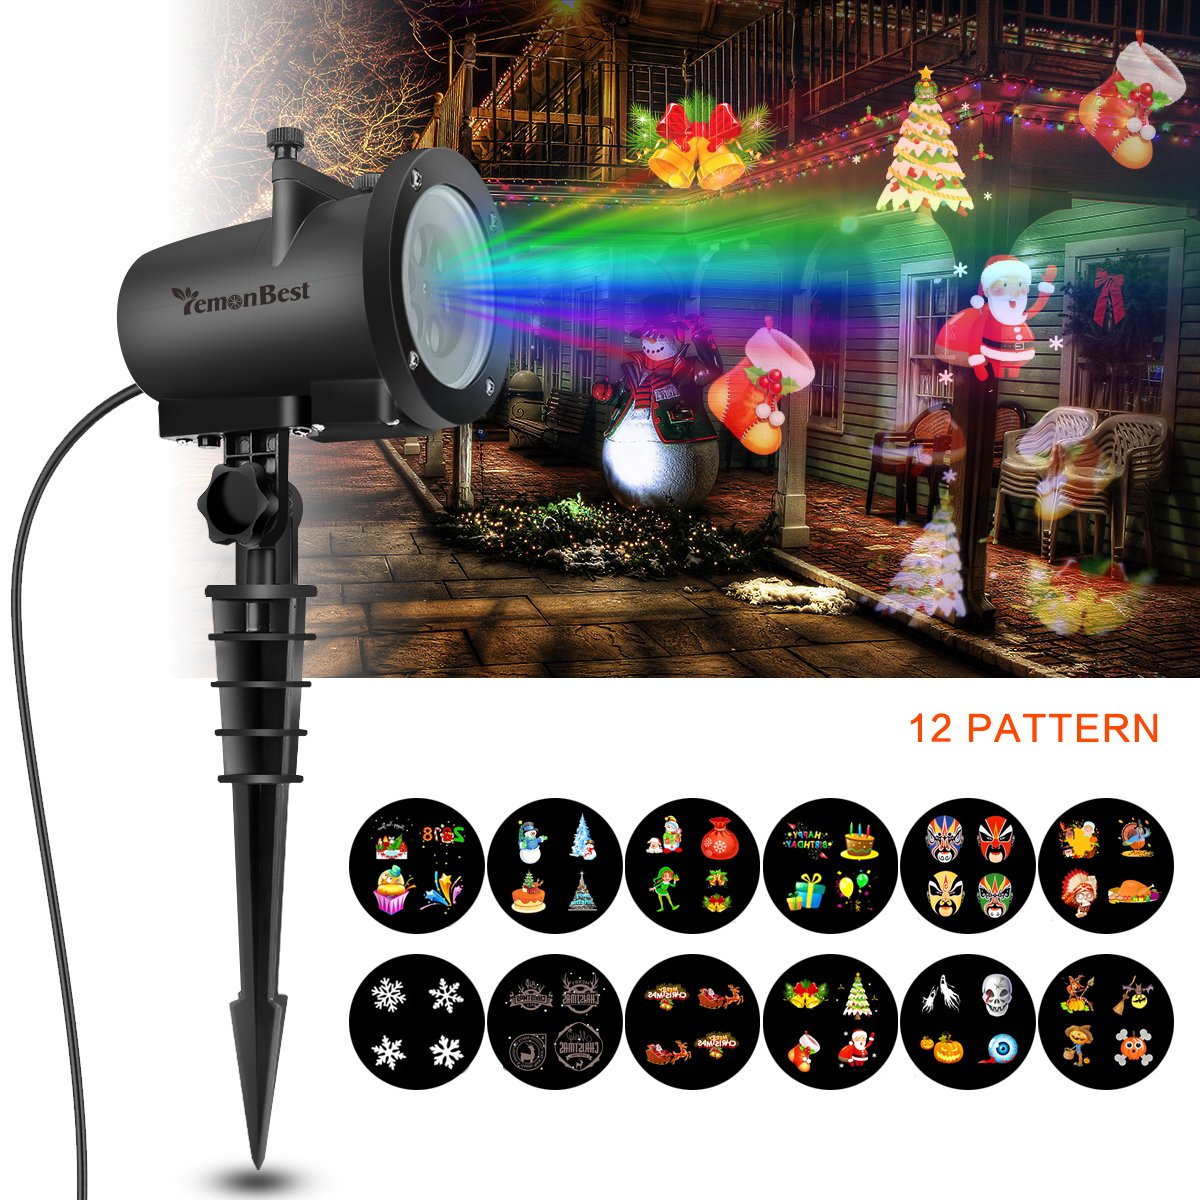 Clearance LED Party Lights, Konesky Newest Version 8W 12 Patterns Waterproof LED Projection Lamp for Party Birthday Wedding Holiday Decoration